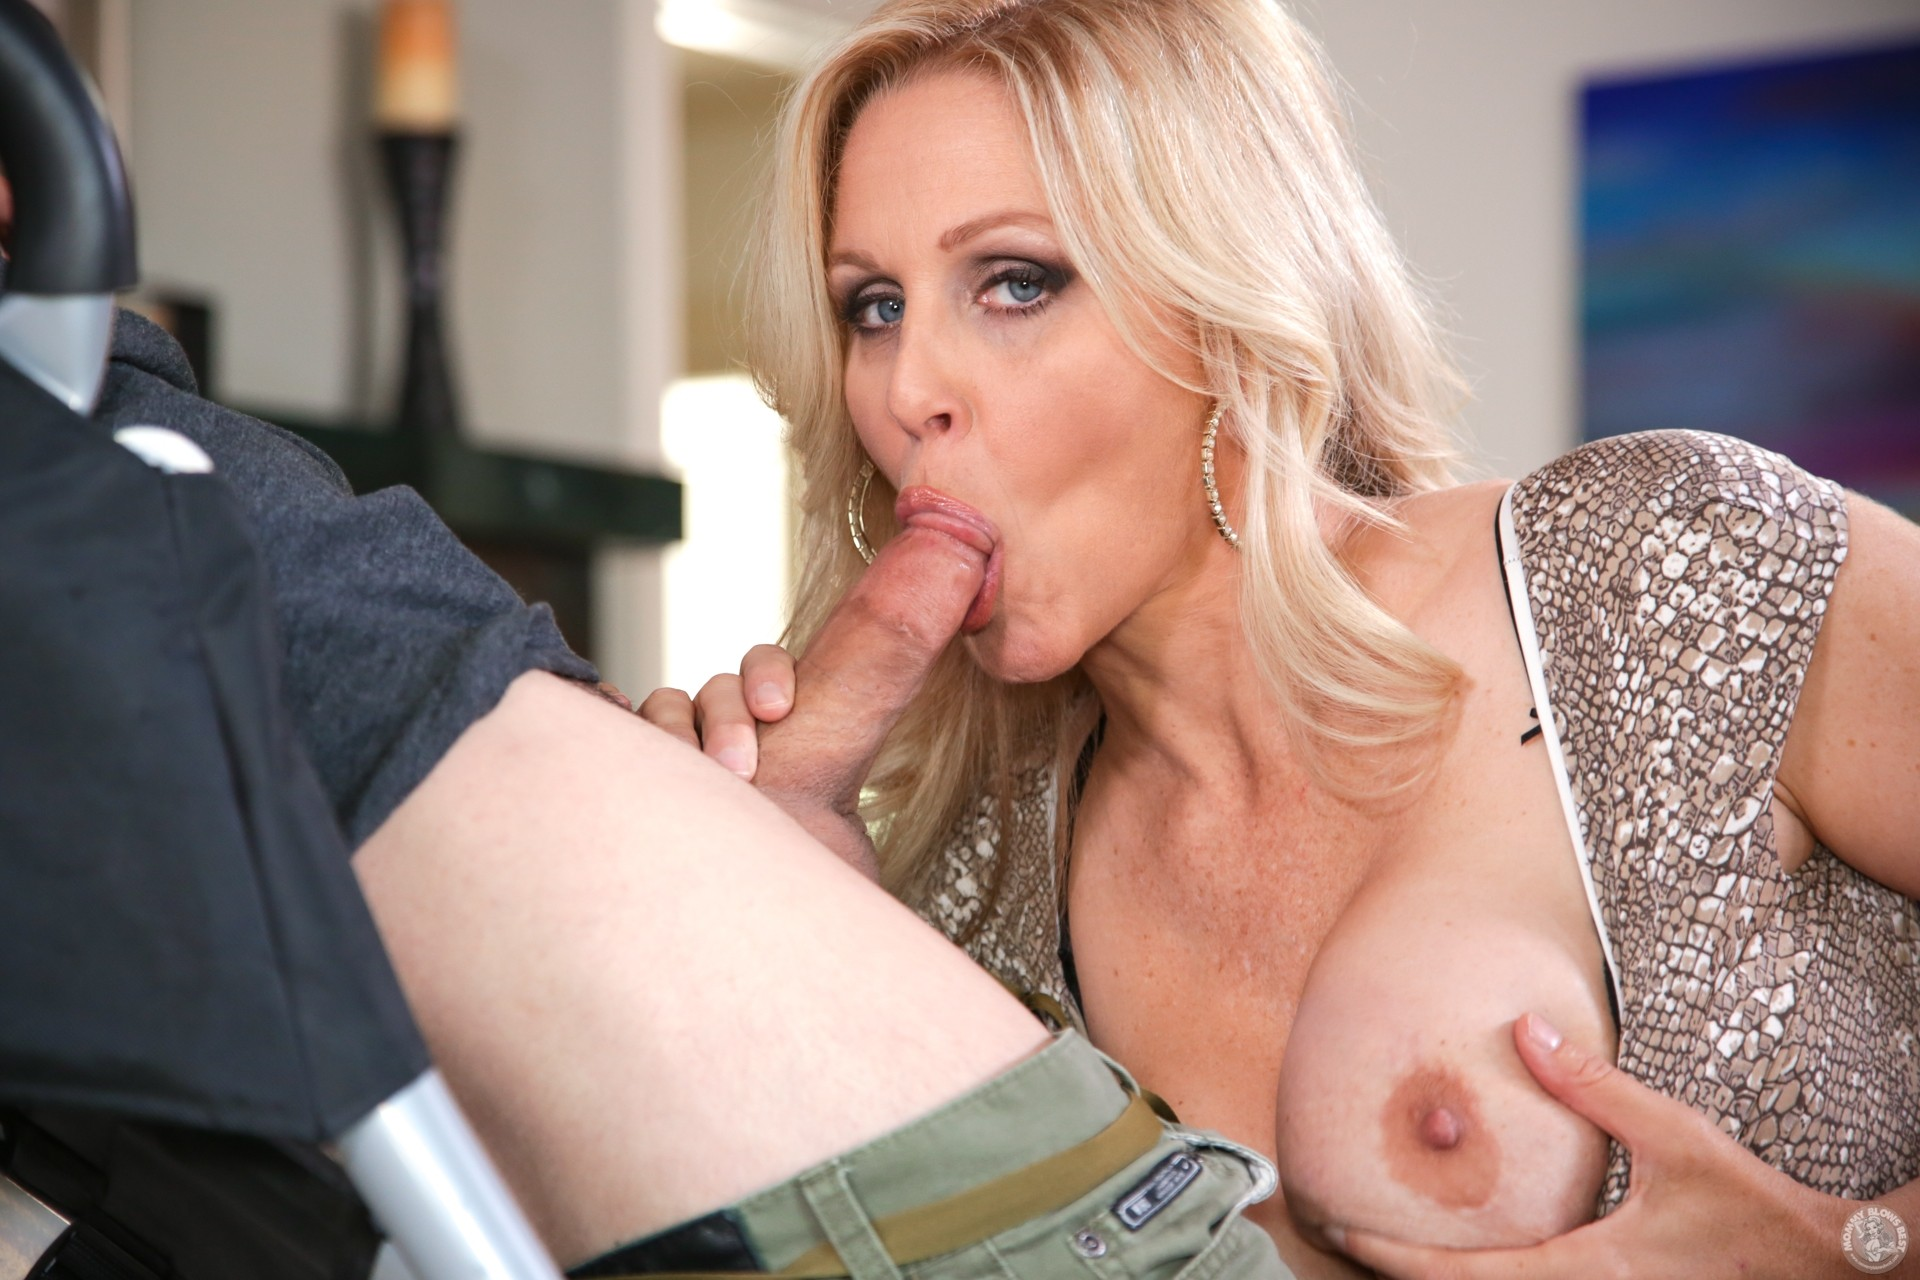 Julia ann making deepthroat mature blowjob